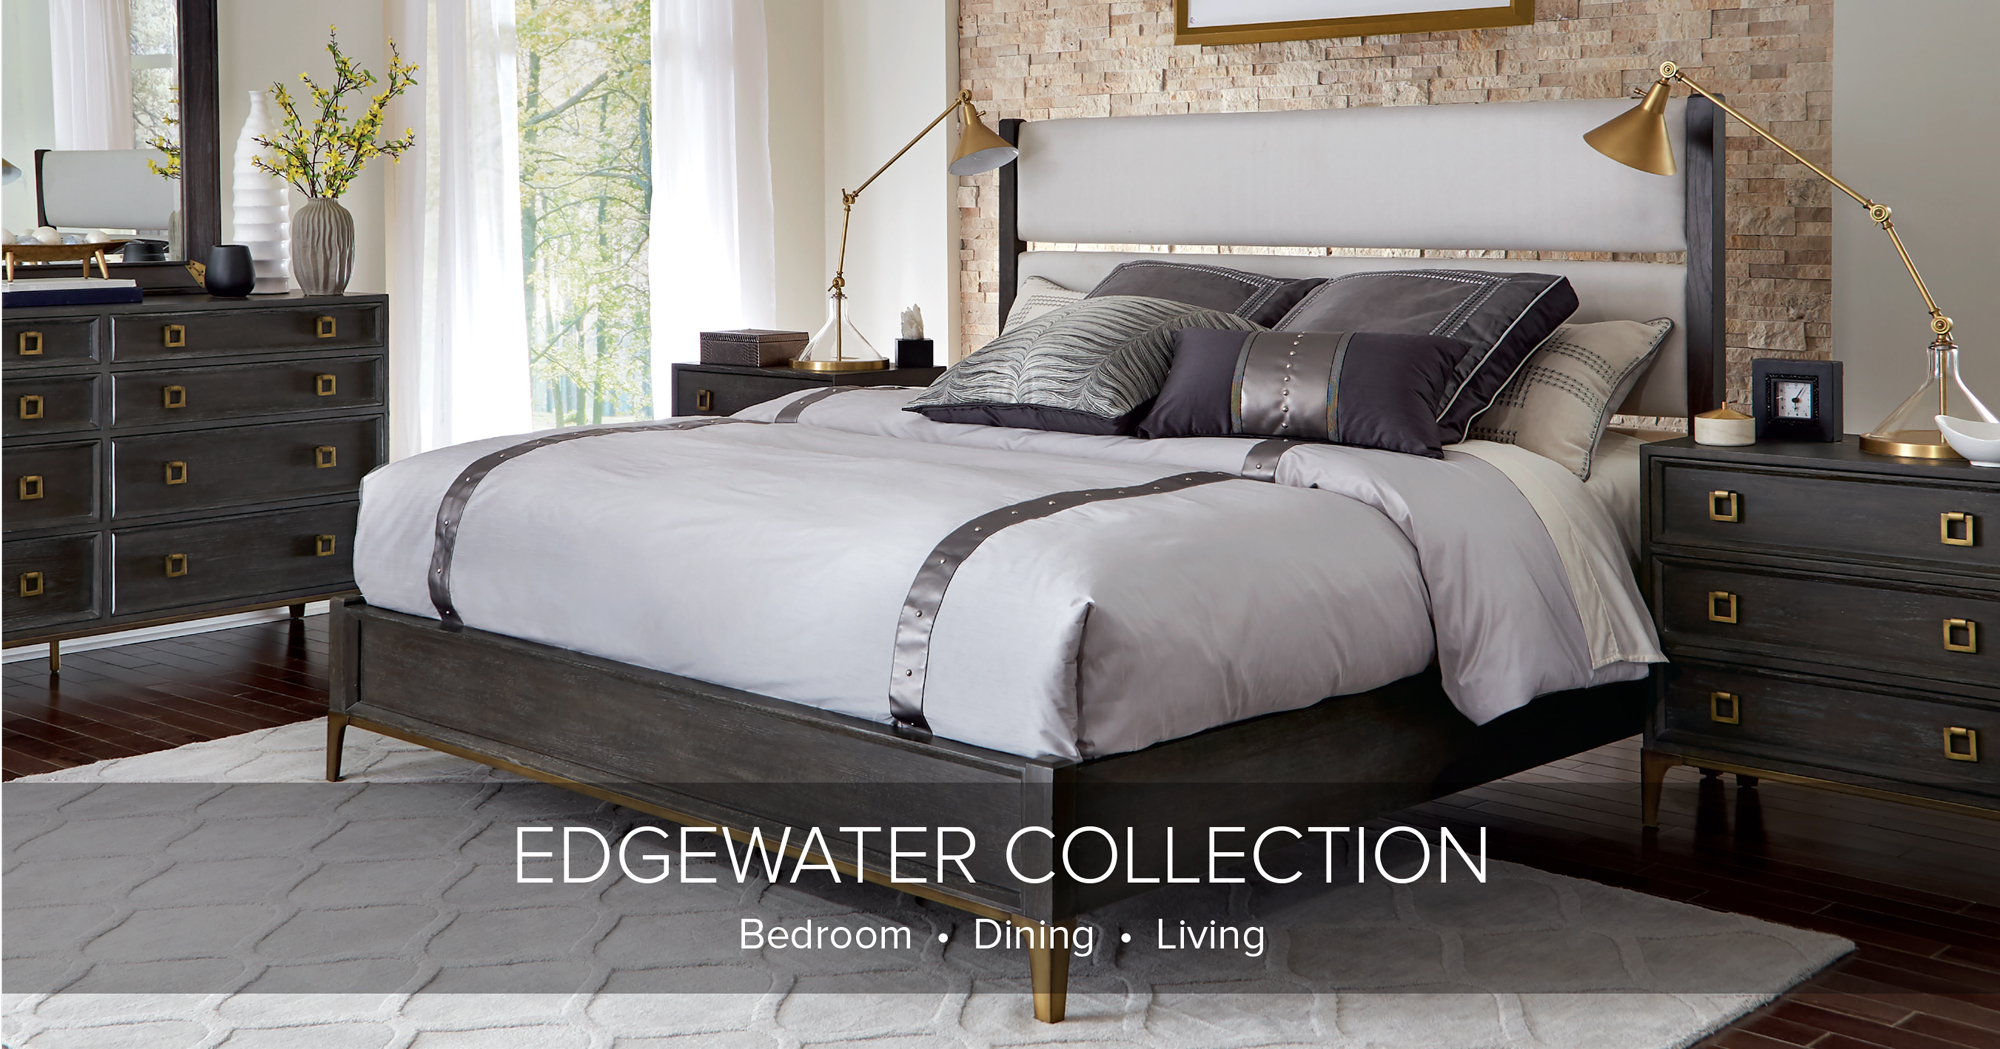 Hekman Edgewater Collection Banner